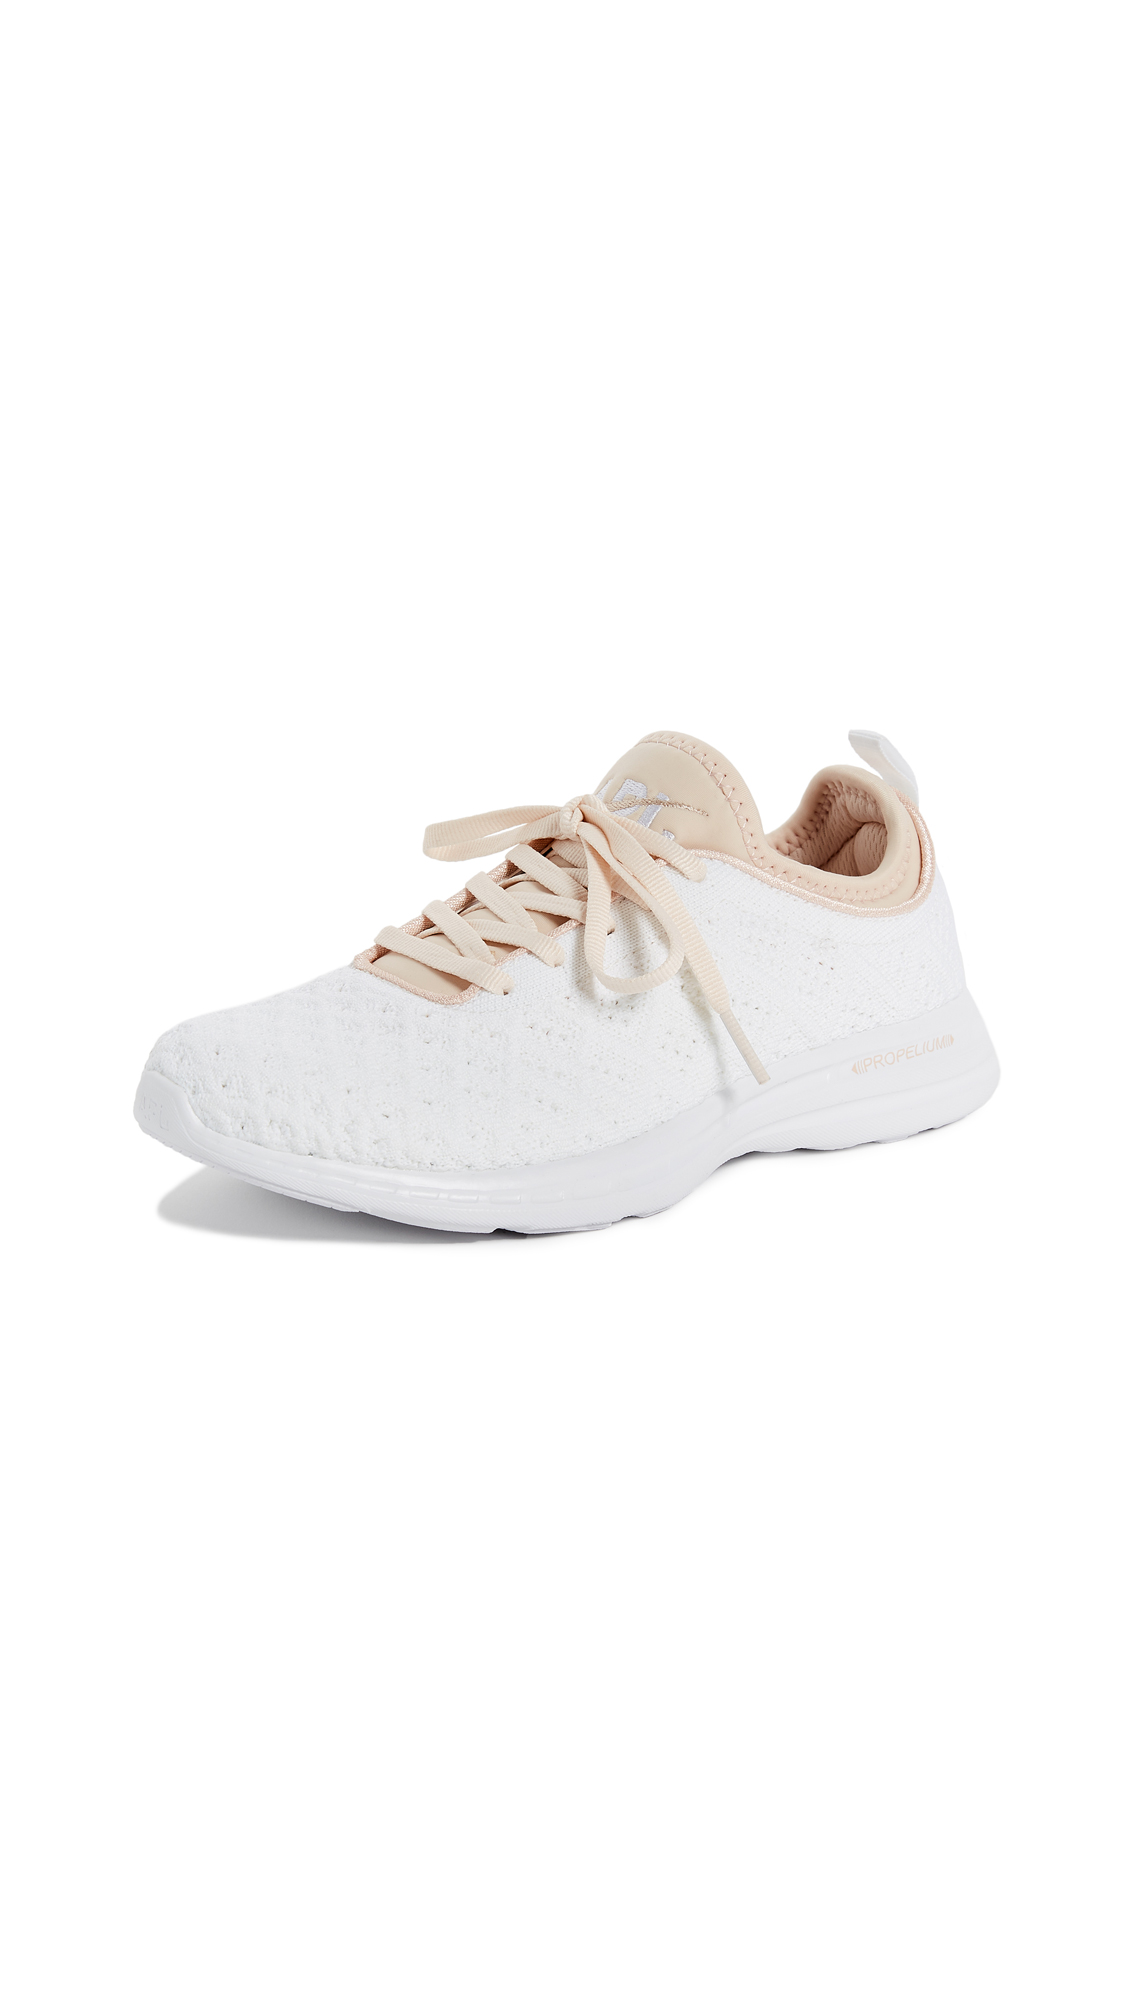 APL: Athletic Propulsion Labs TechLoom Phantom Sneakers - White/Opaque Peach